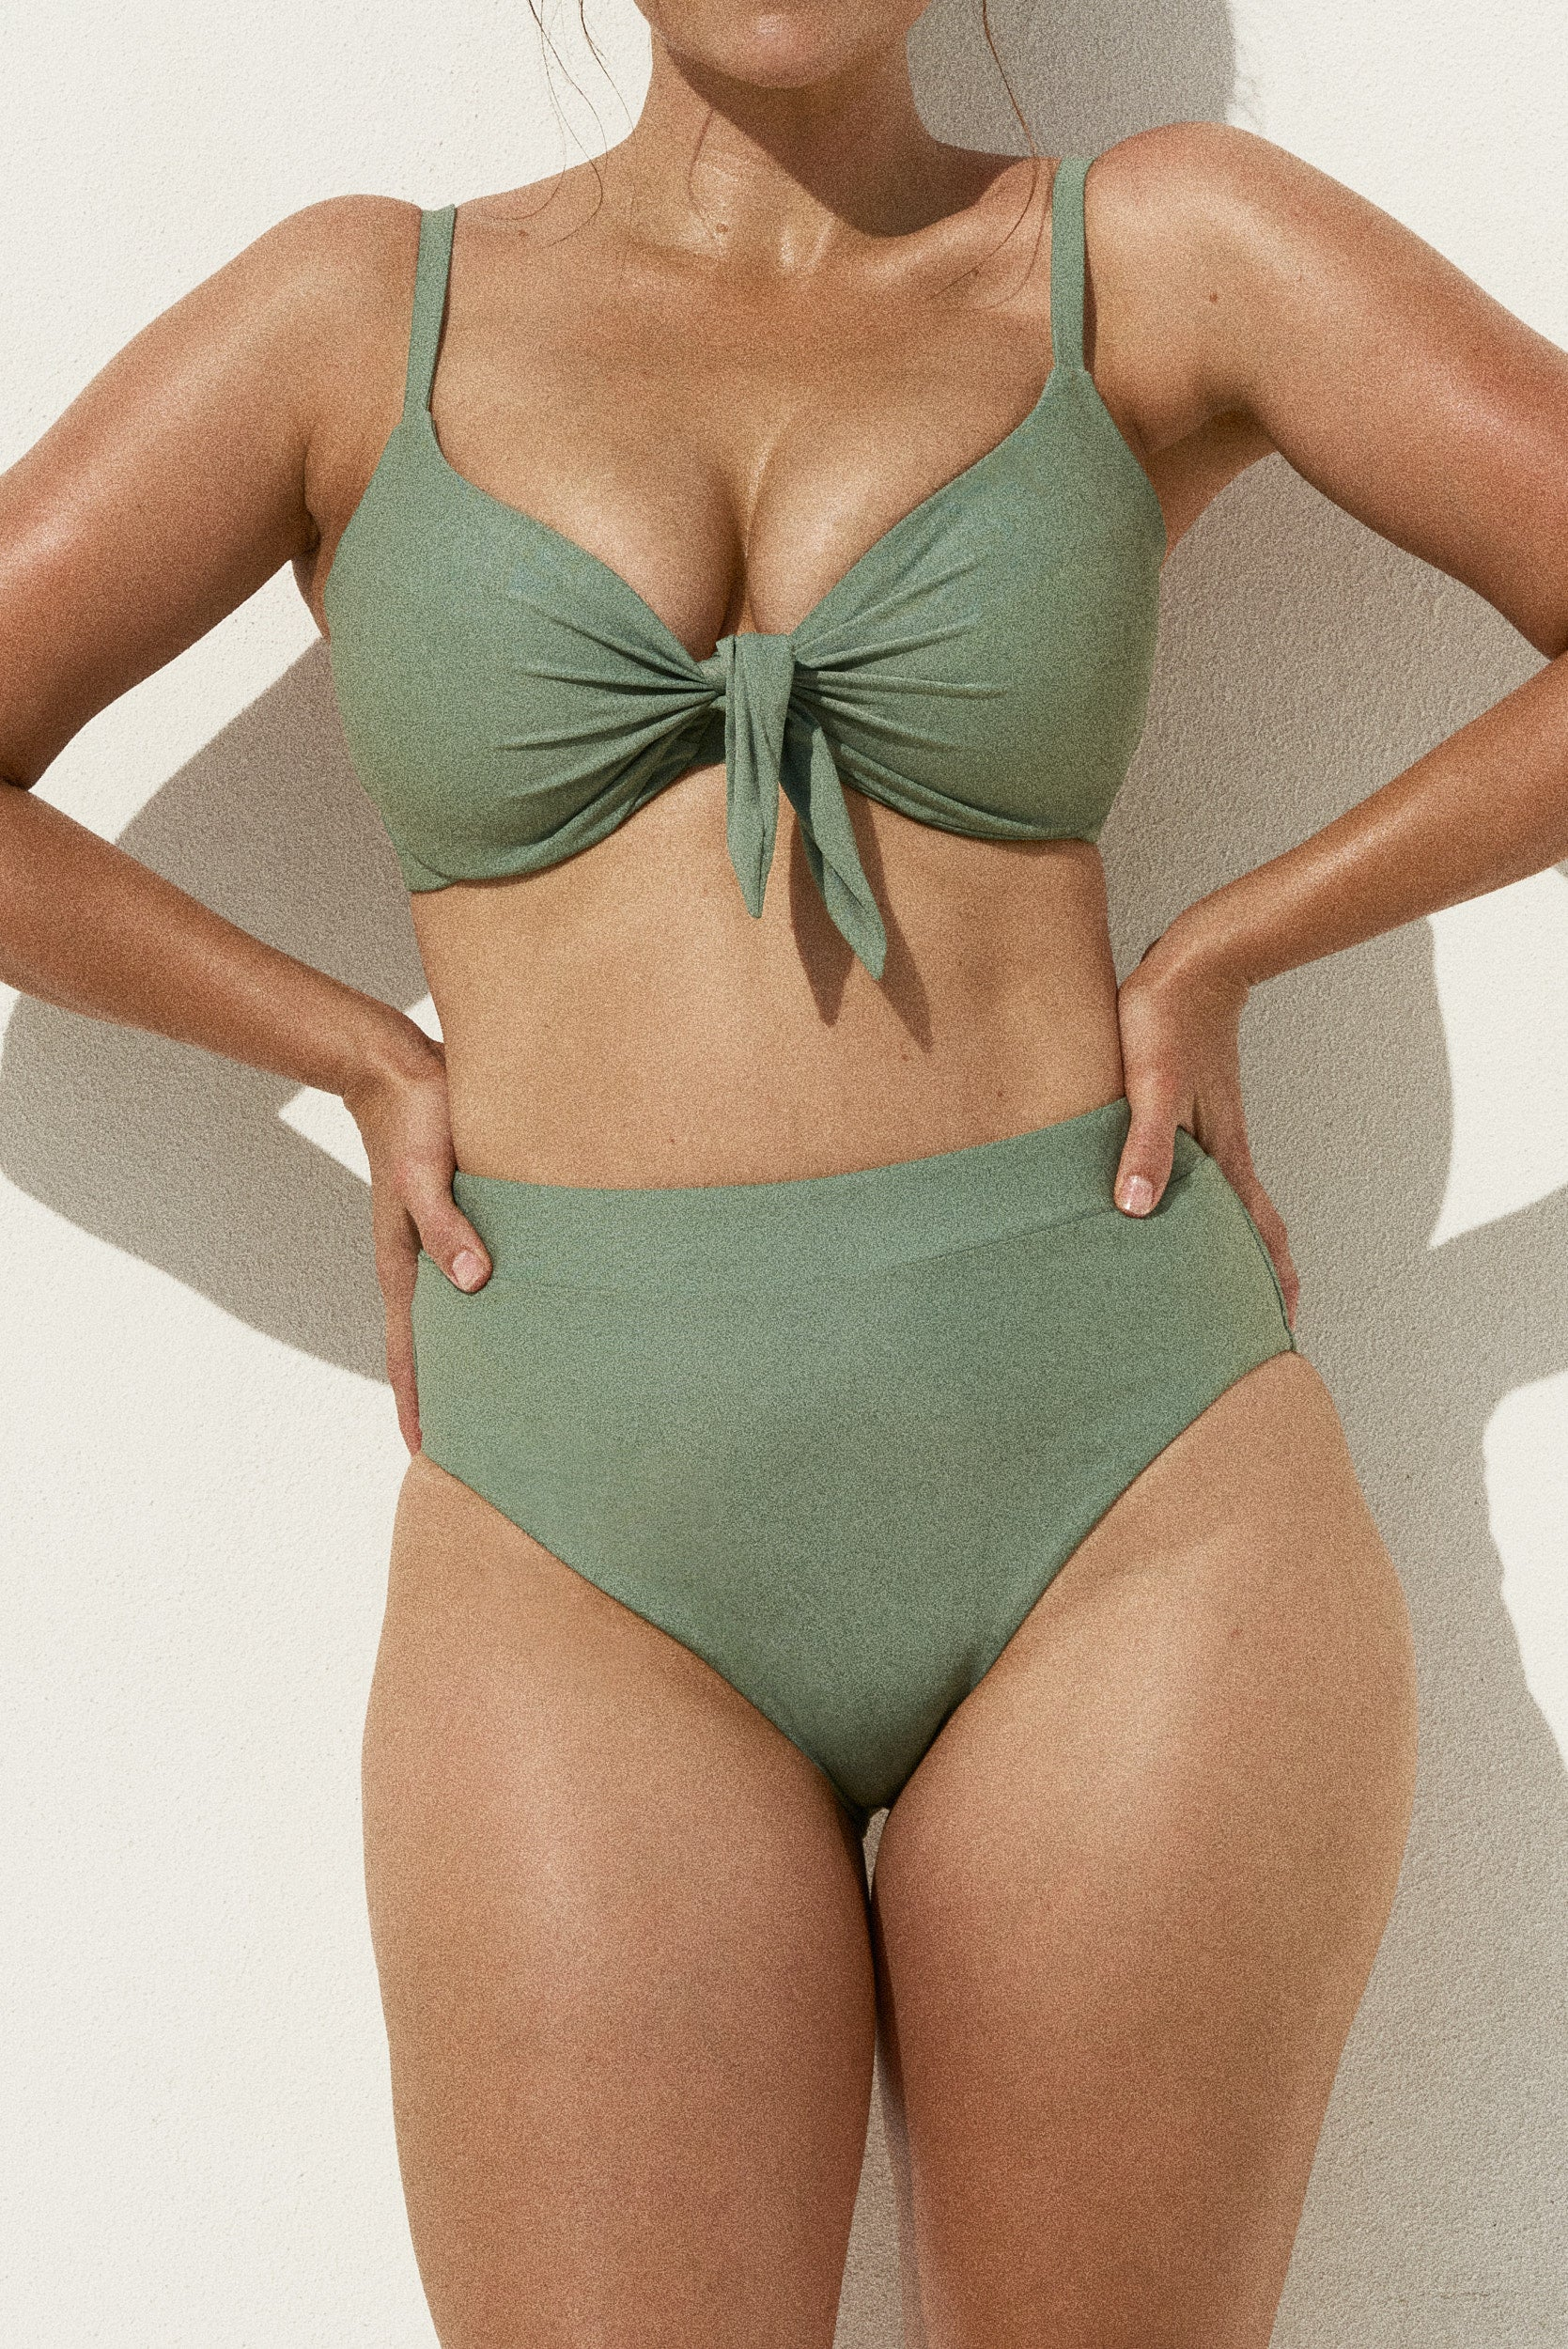 MARVELL LANE'S EMELIE BIKINI TOP IN EUCALUYPTUS COLOUR. AVAILABLE CUP SIZES 8D - 16H. EUCALYPTUS COLOUR CLOSE TO OLIVE GREEN COLOUR